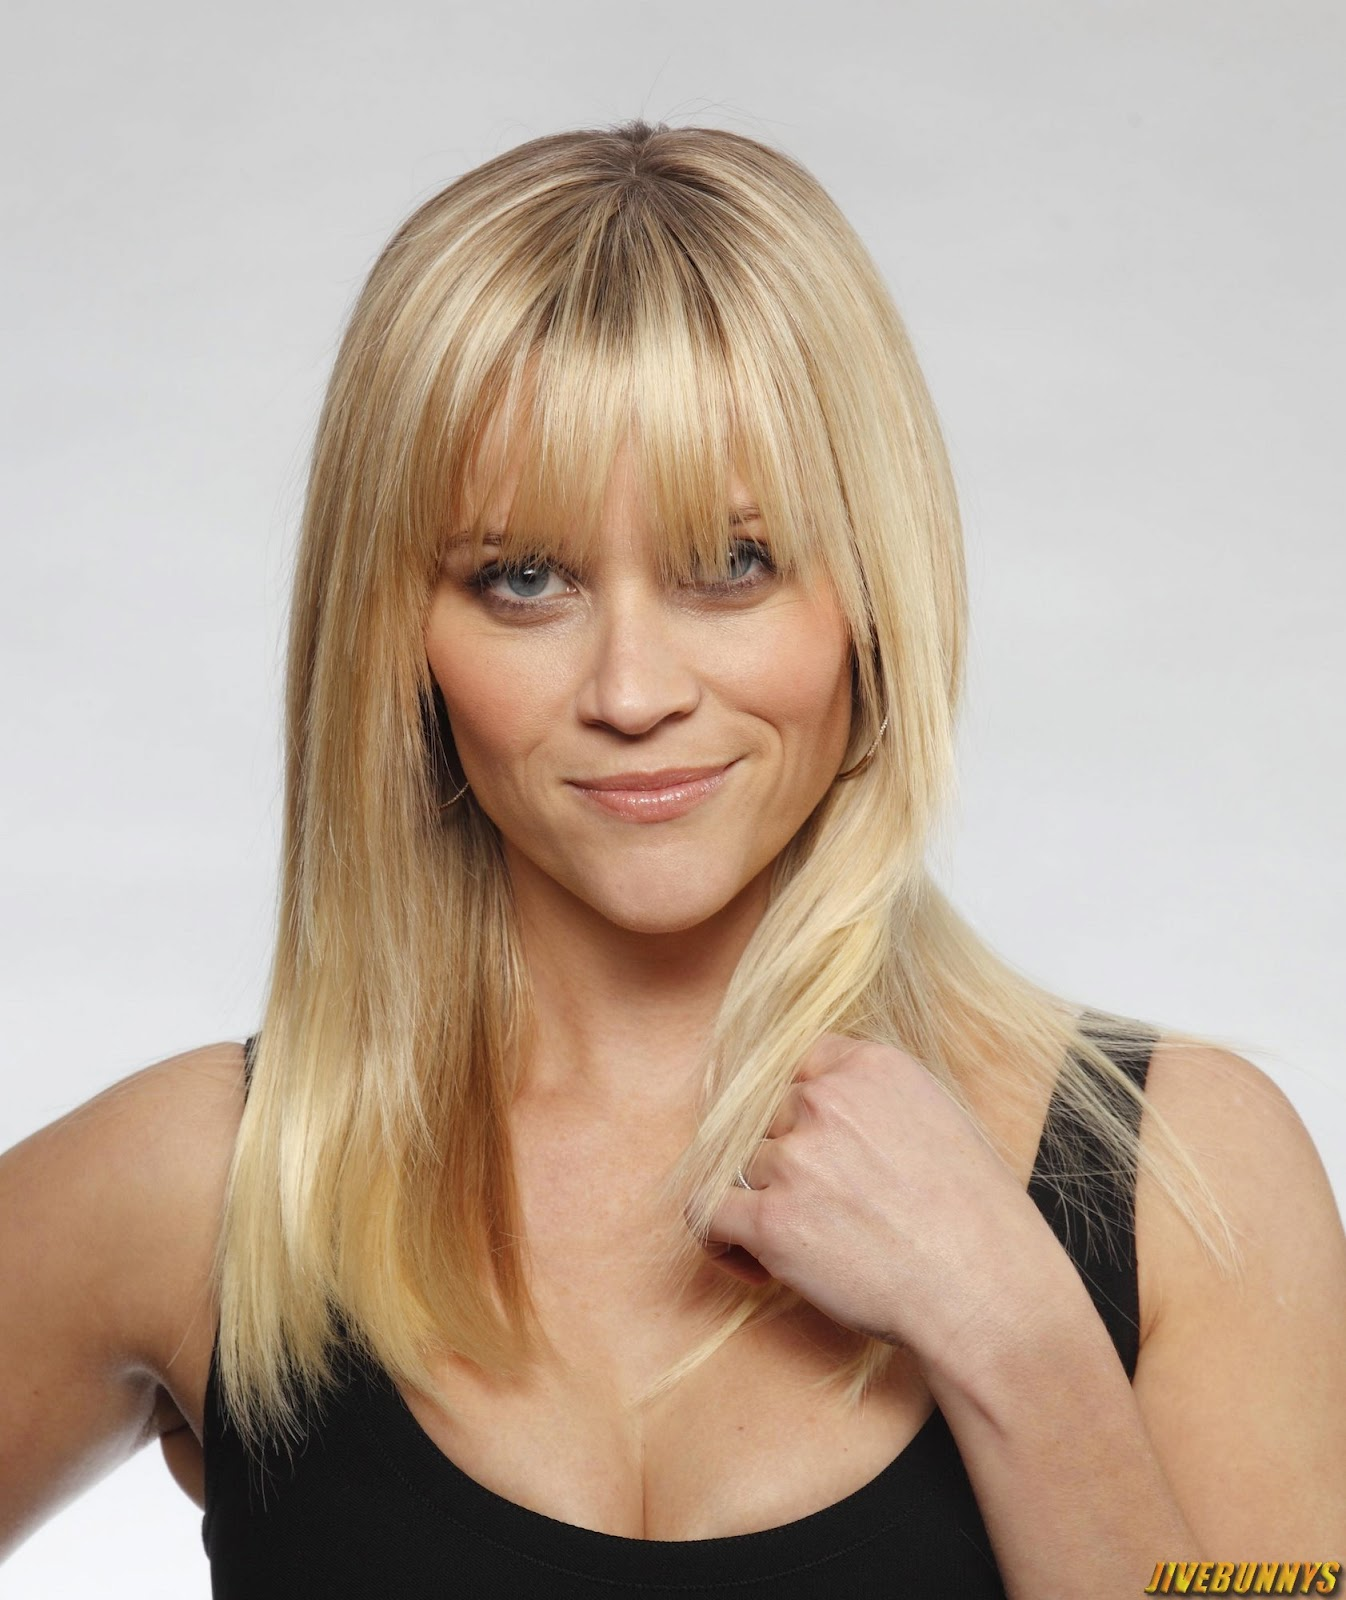 Jivebunnys Female Cele... Reese Witherspoon Movies